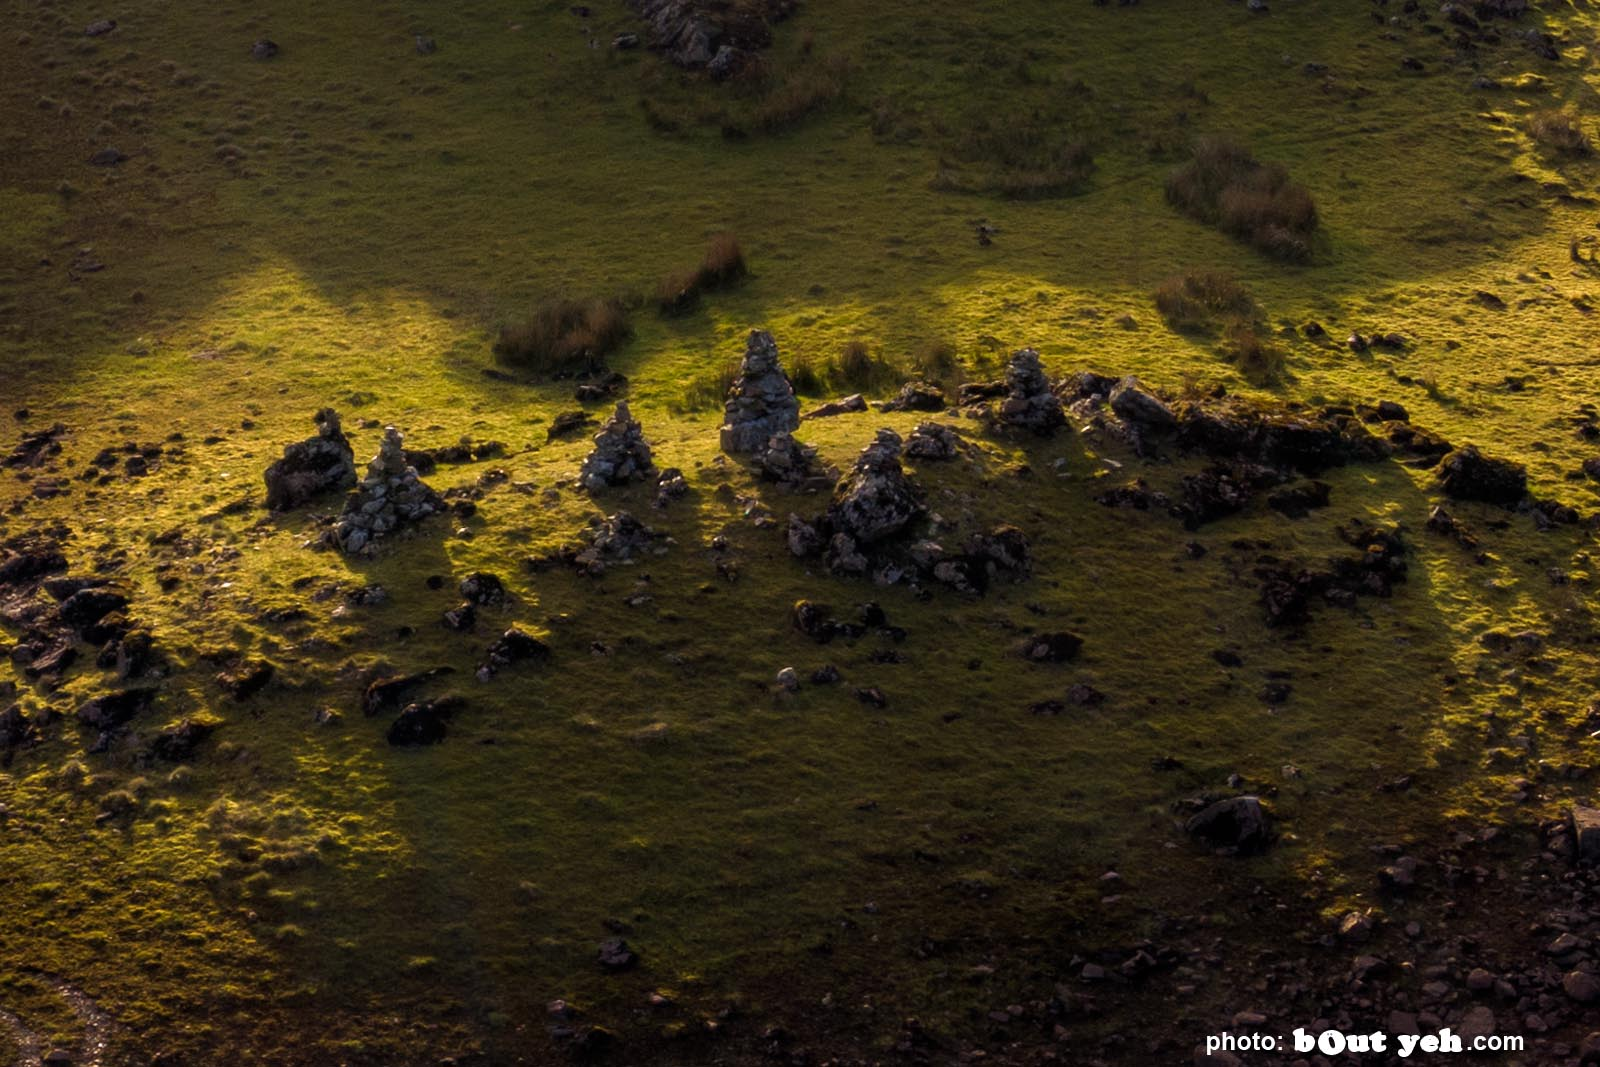 Aerial photo of Loughareema showing detail of a rock formation - drone photography and video by Bout Yeh photographers Belfast. Photo 280421